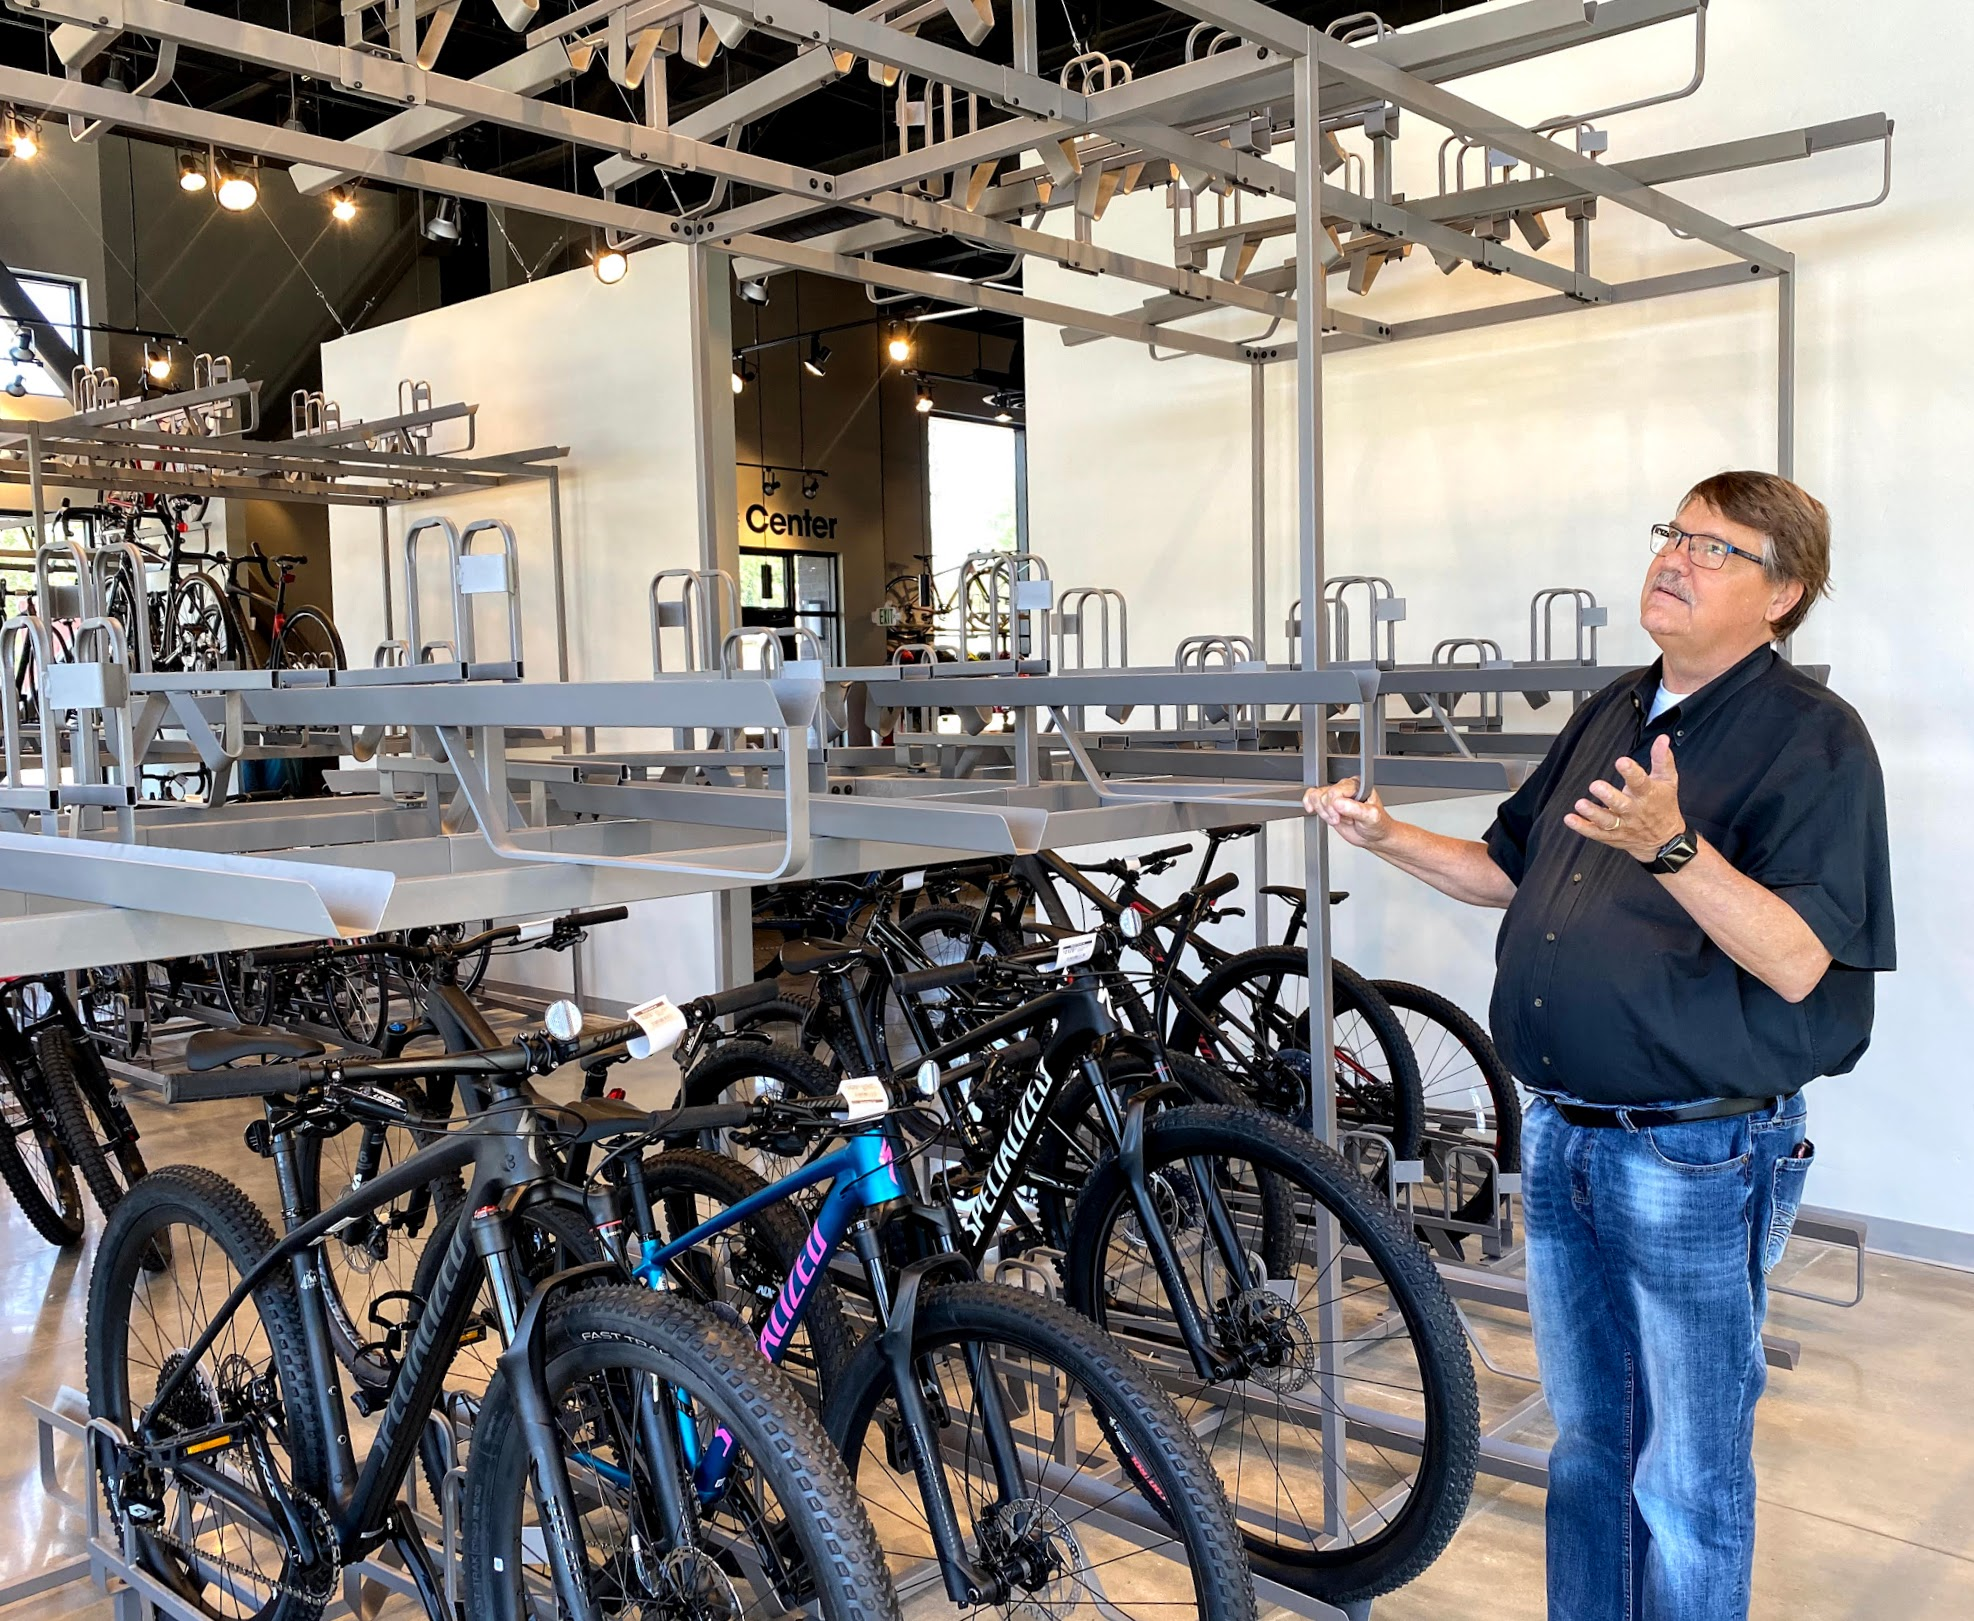 Phil Blomquist, owner of Bicycle Center in Sugar House, looks at an empty bike rack. During the pandemic, bikes are selling so fast it's hard to replenish the inventory.